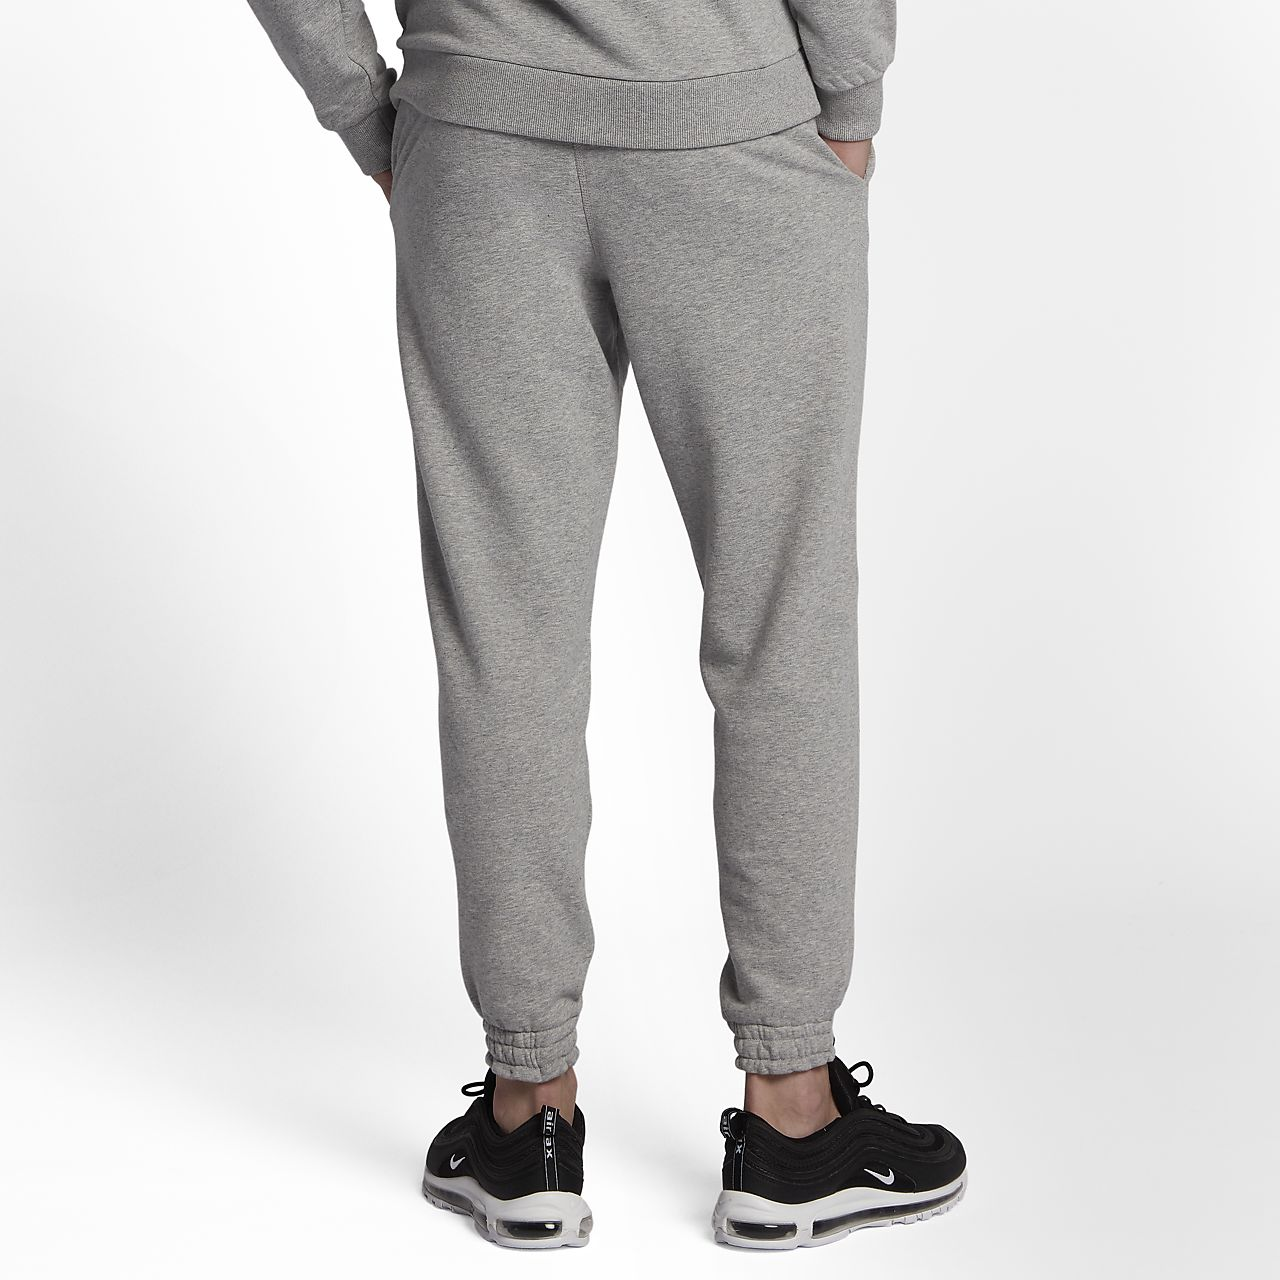 NikeLab Made In Italy Men's Trousers